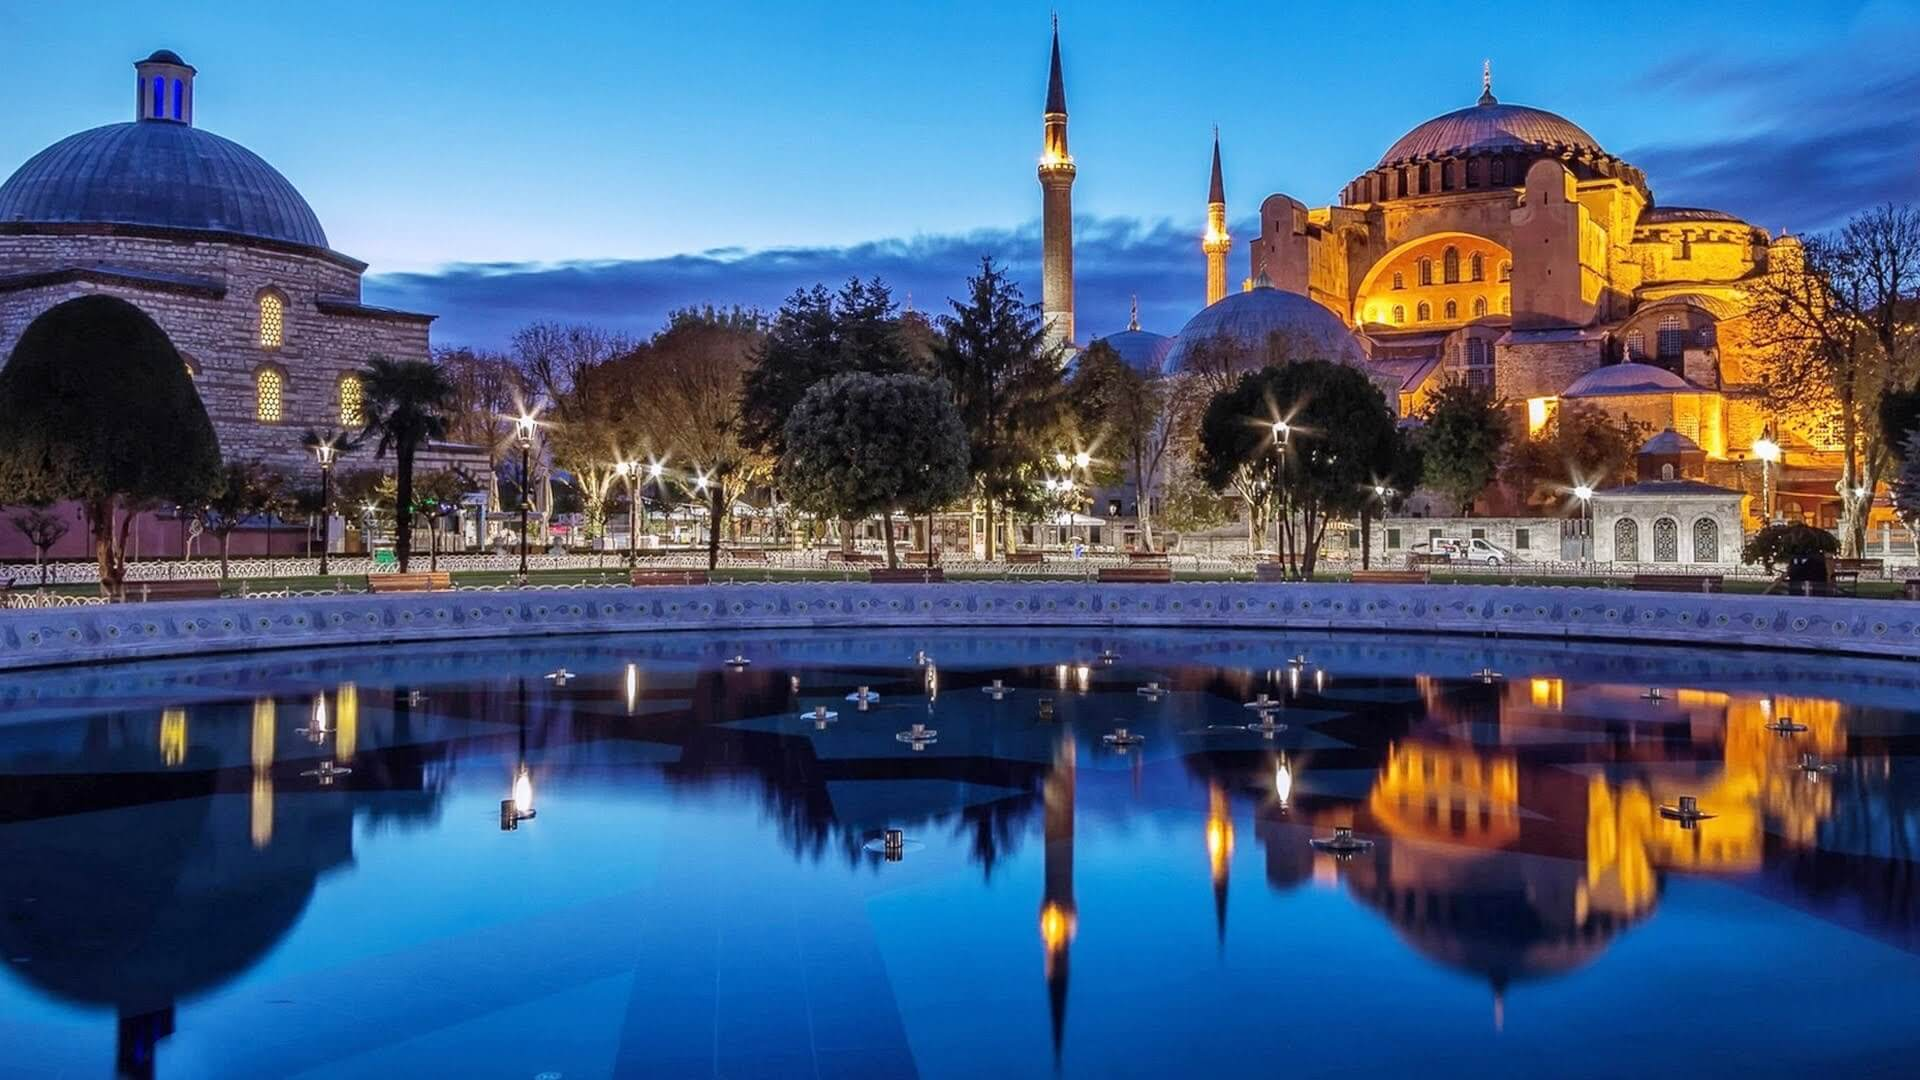 Istanbul Premium Holiday Travel & Tour Package